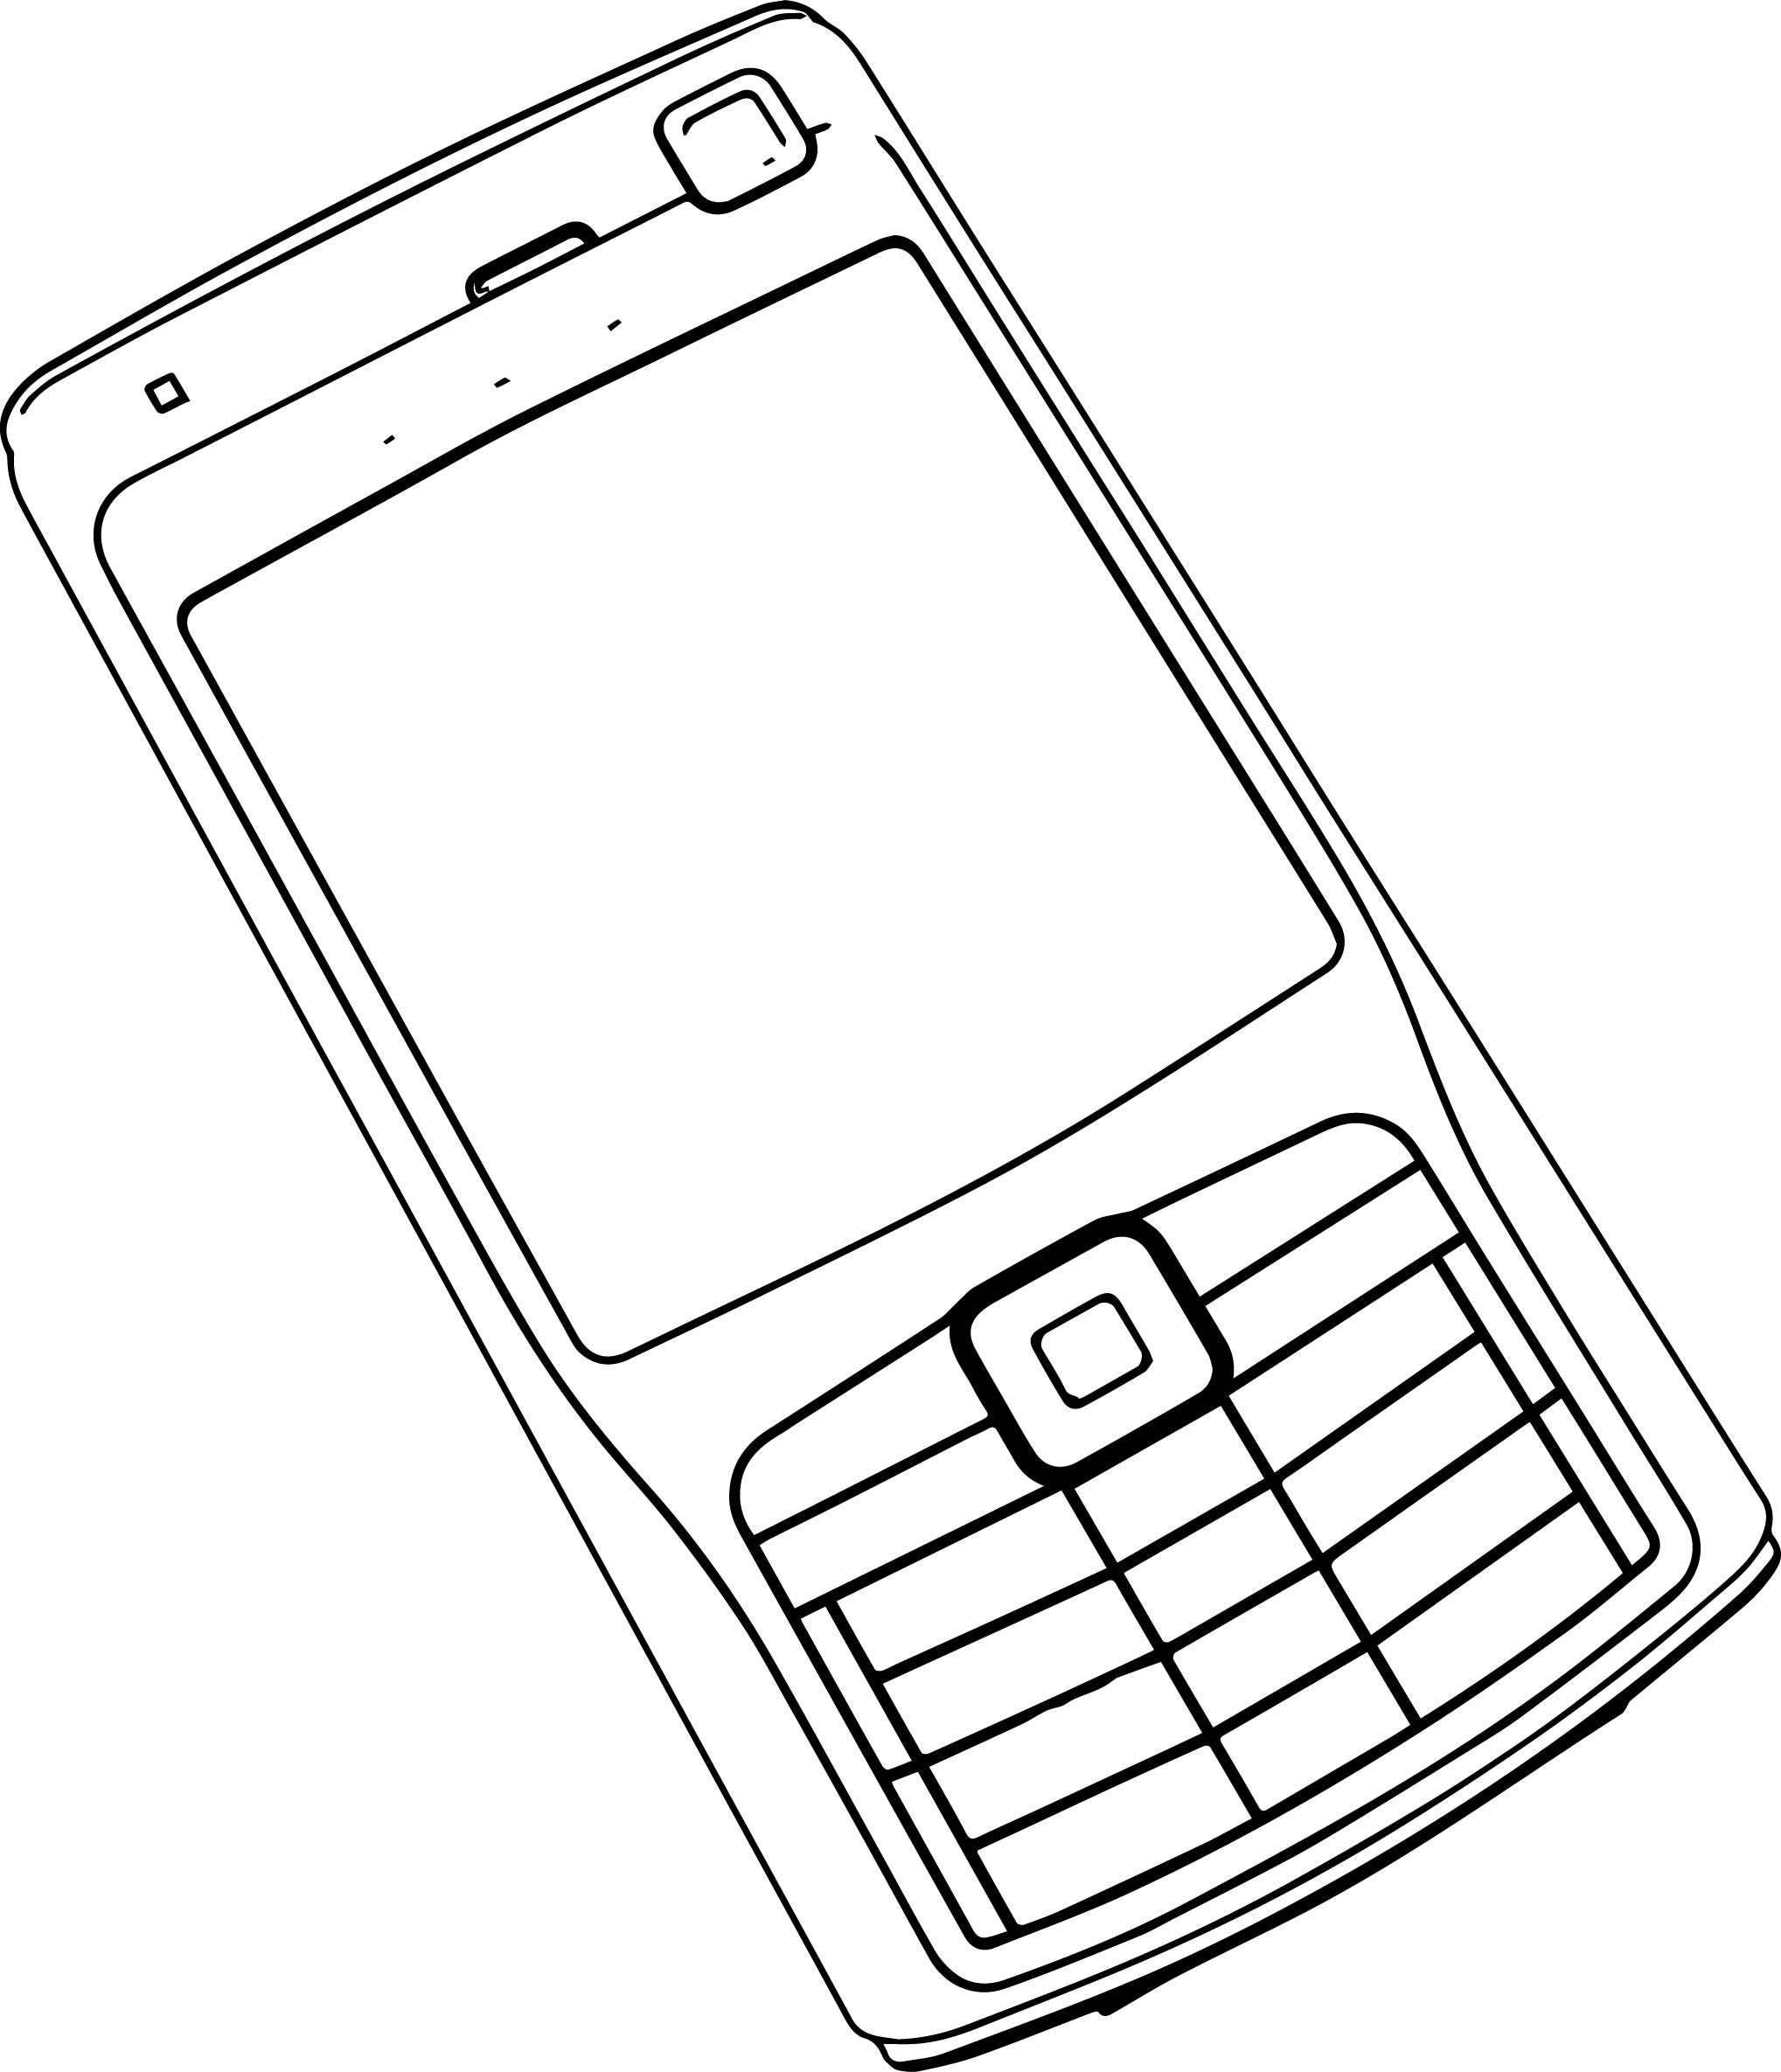 cell phone clip art outline sketch coloring page sketch With nokia cell phone